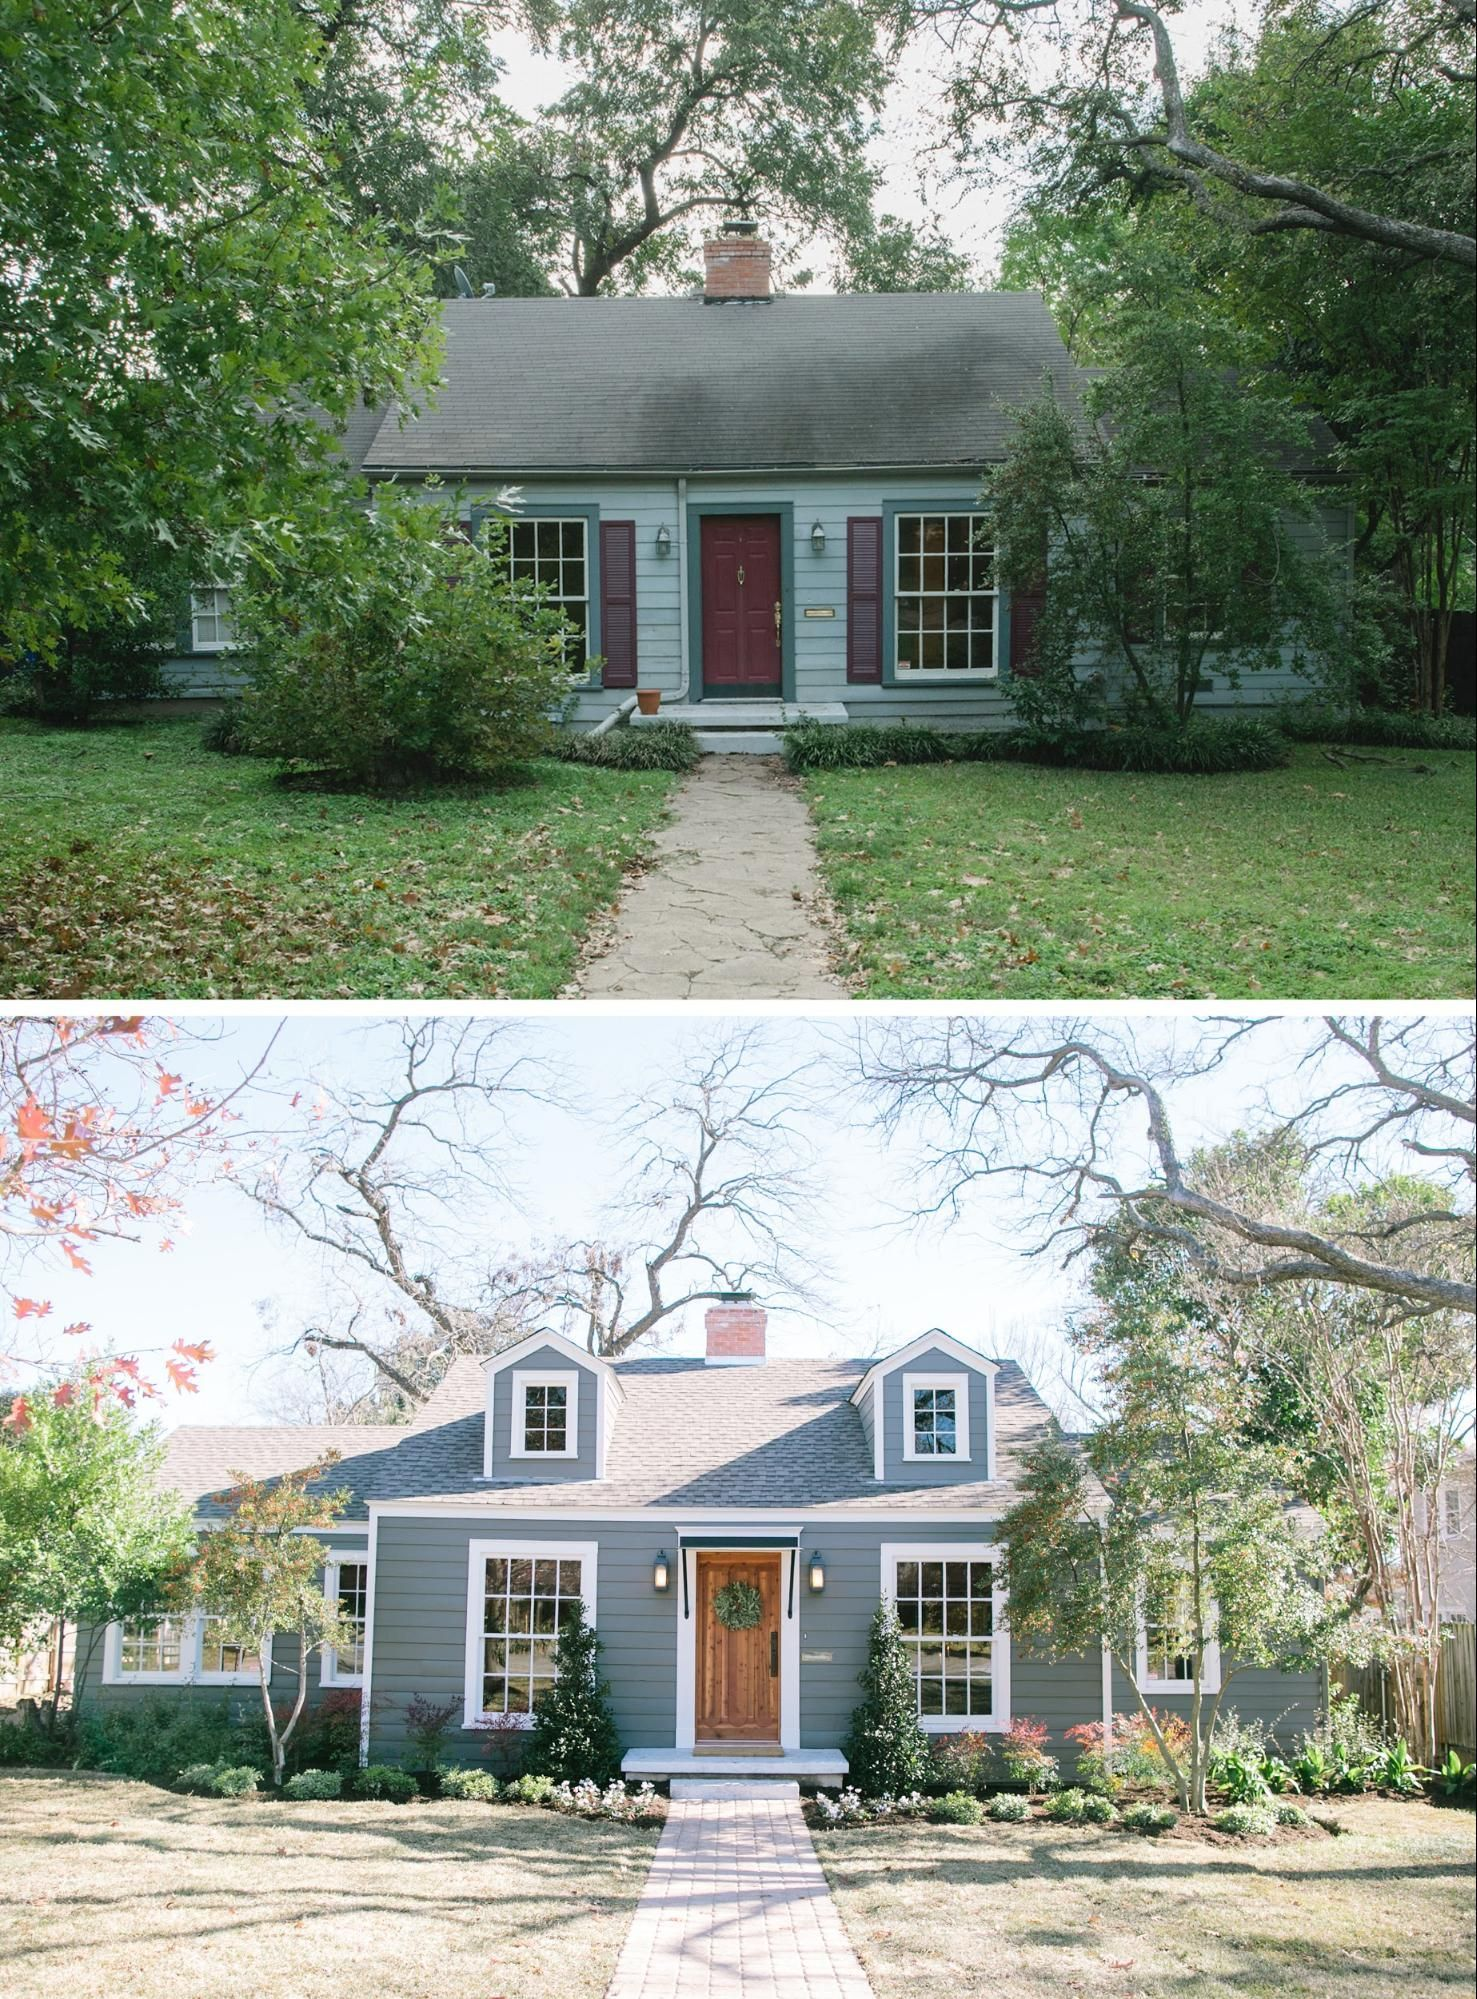 50 Best Exterior Paint Colors for Your Home | Home Exterior ...